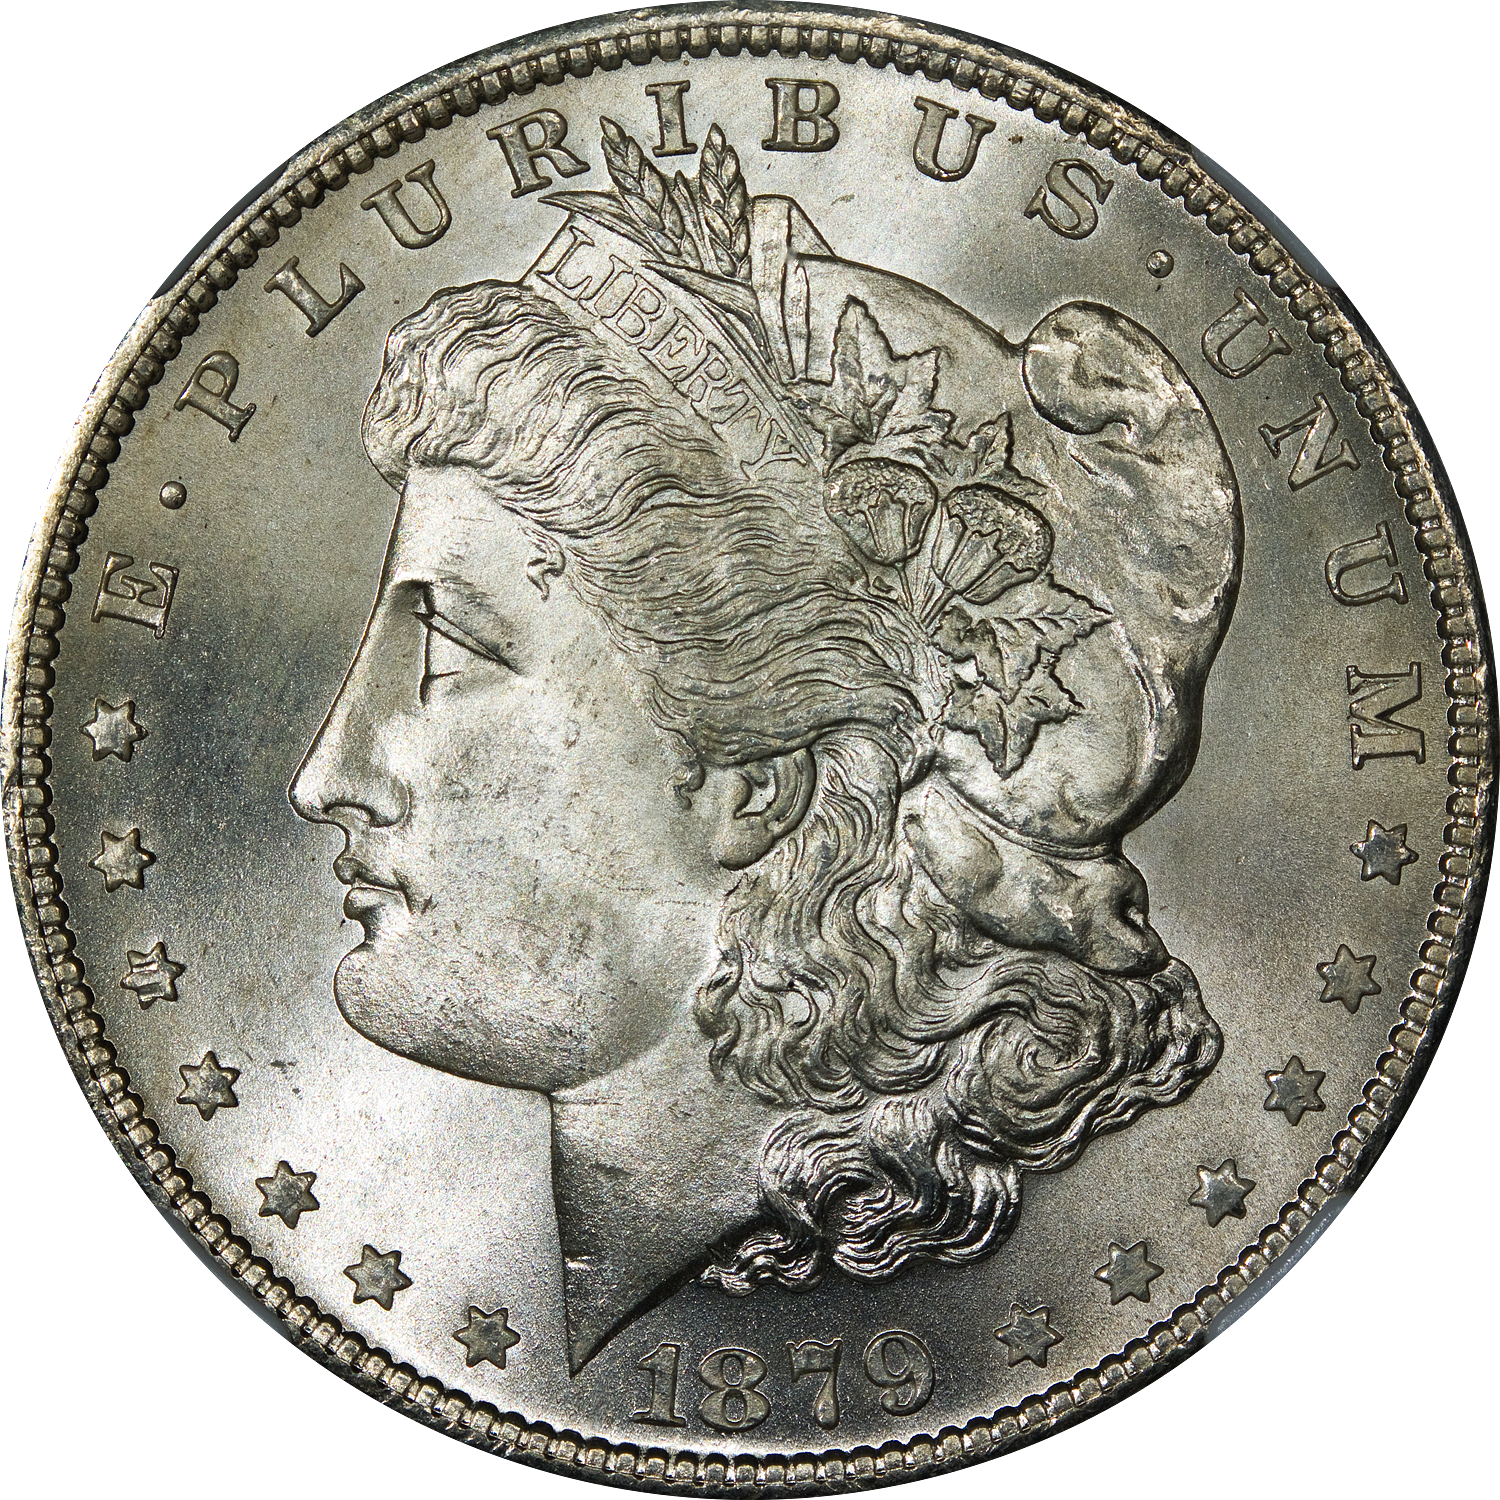 Morgan dollar - Wikipedia